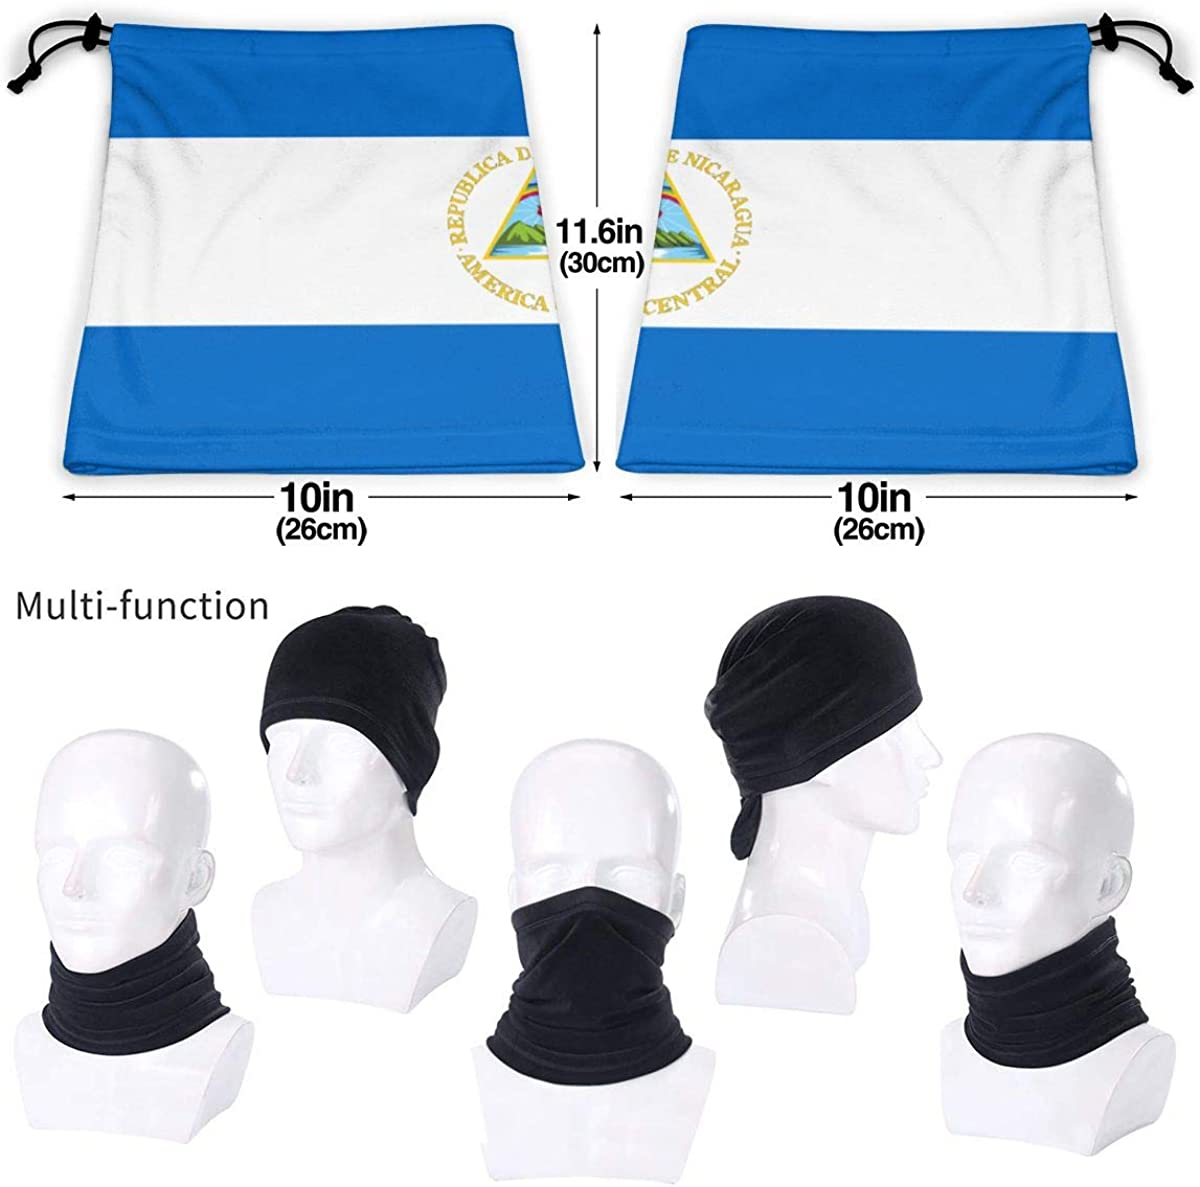 Seamless Face Mask Bandanas Neck Warmer Scarf Gaiter Nicaragua Flag For Dust Outdoors Festivals Sports Windproof Men And Women